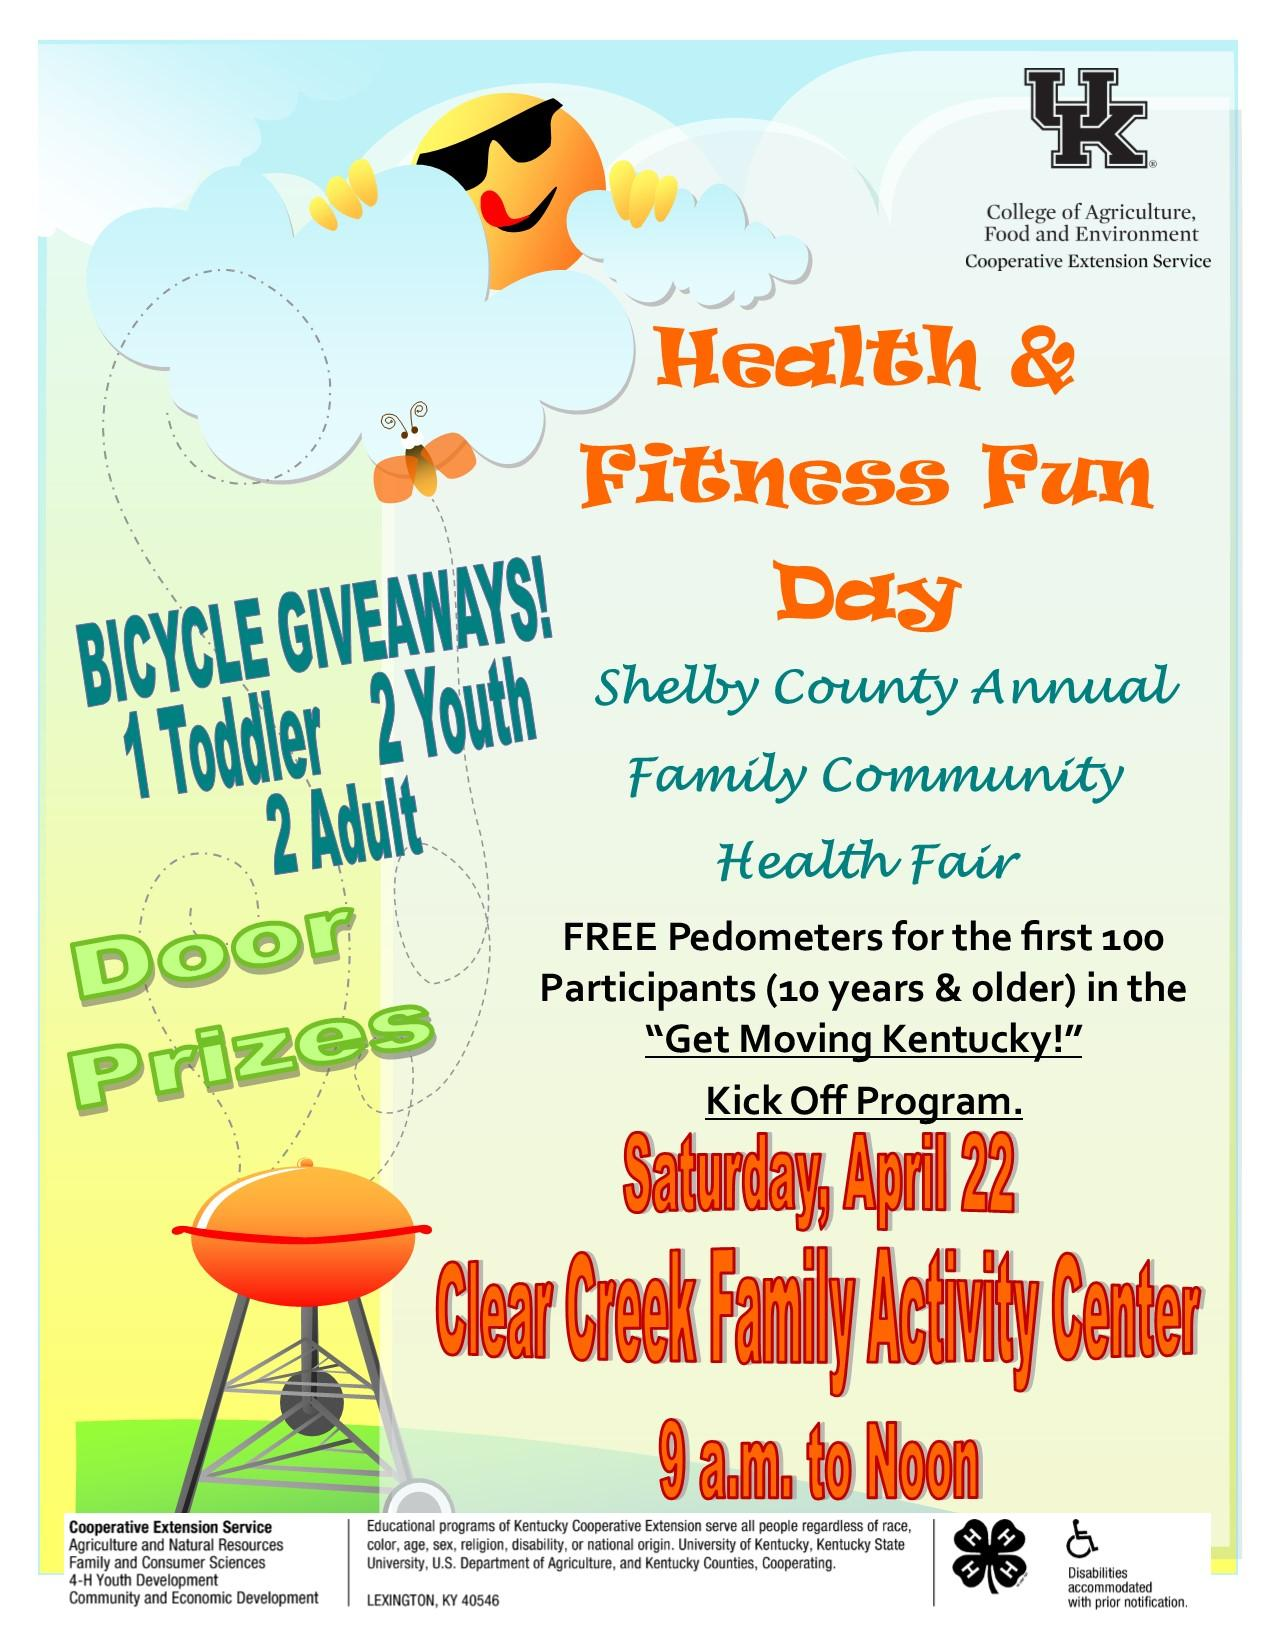 Health & Fitness Fun Day 2017